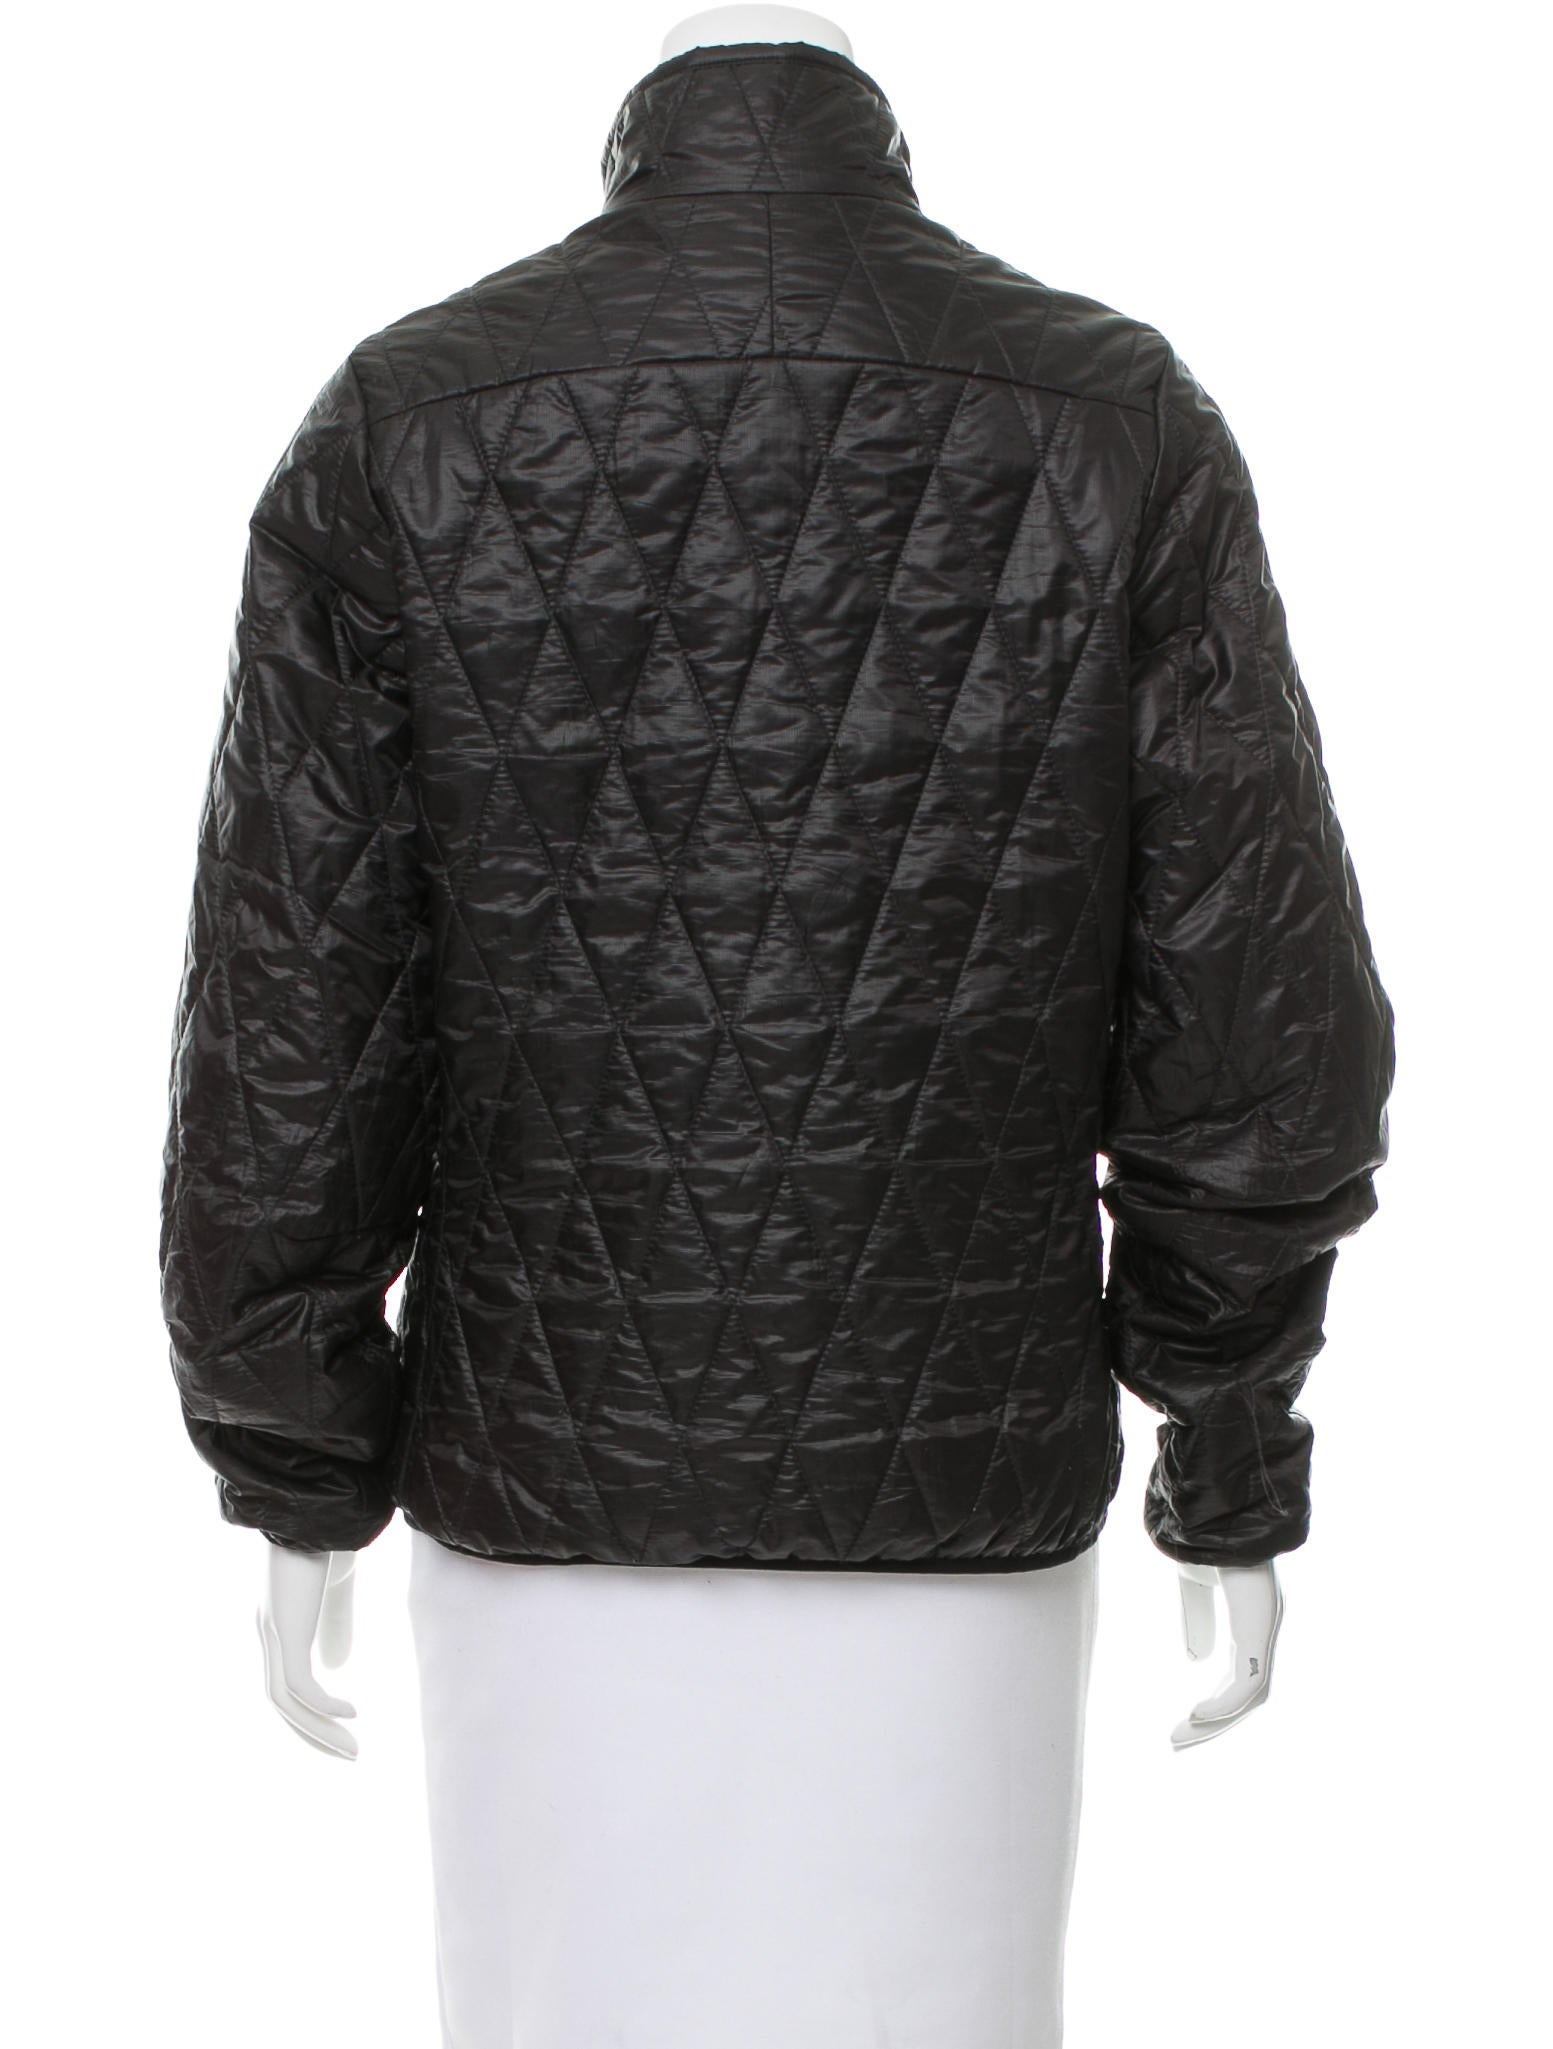 Patagonia Quilted Pullover Jacket Clothing Wpatg20238